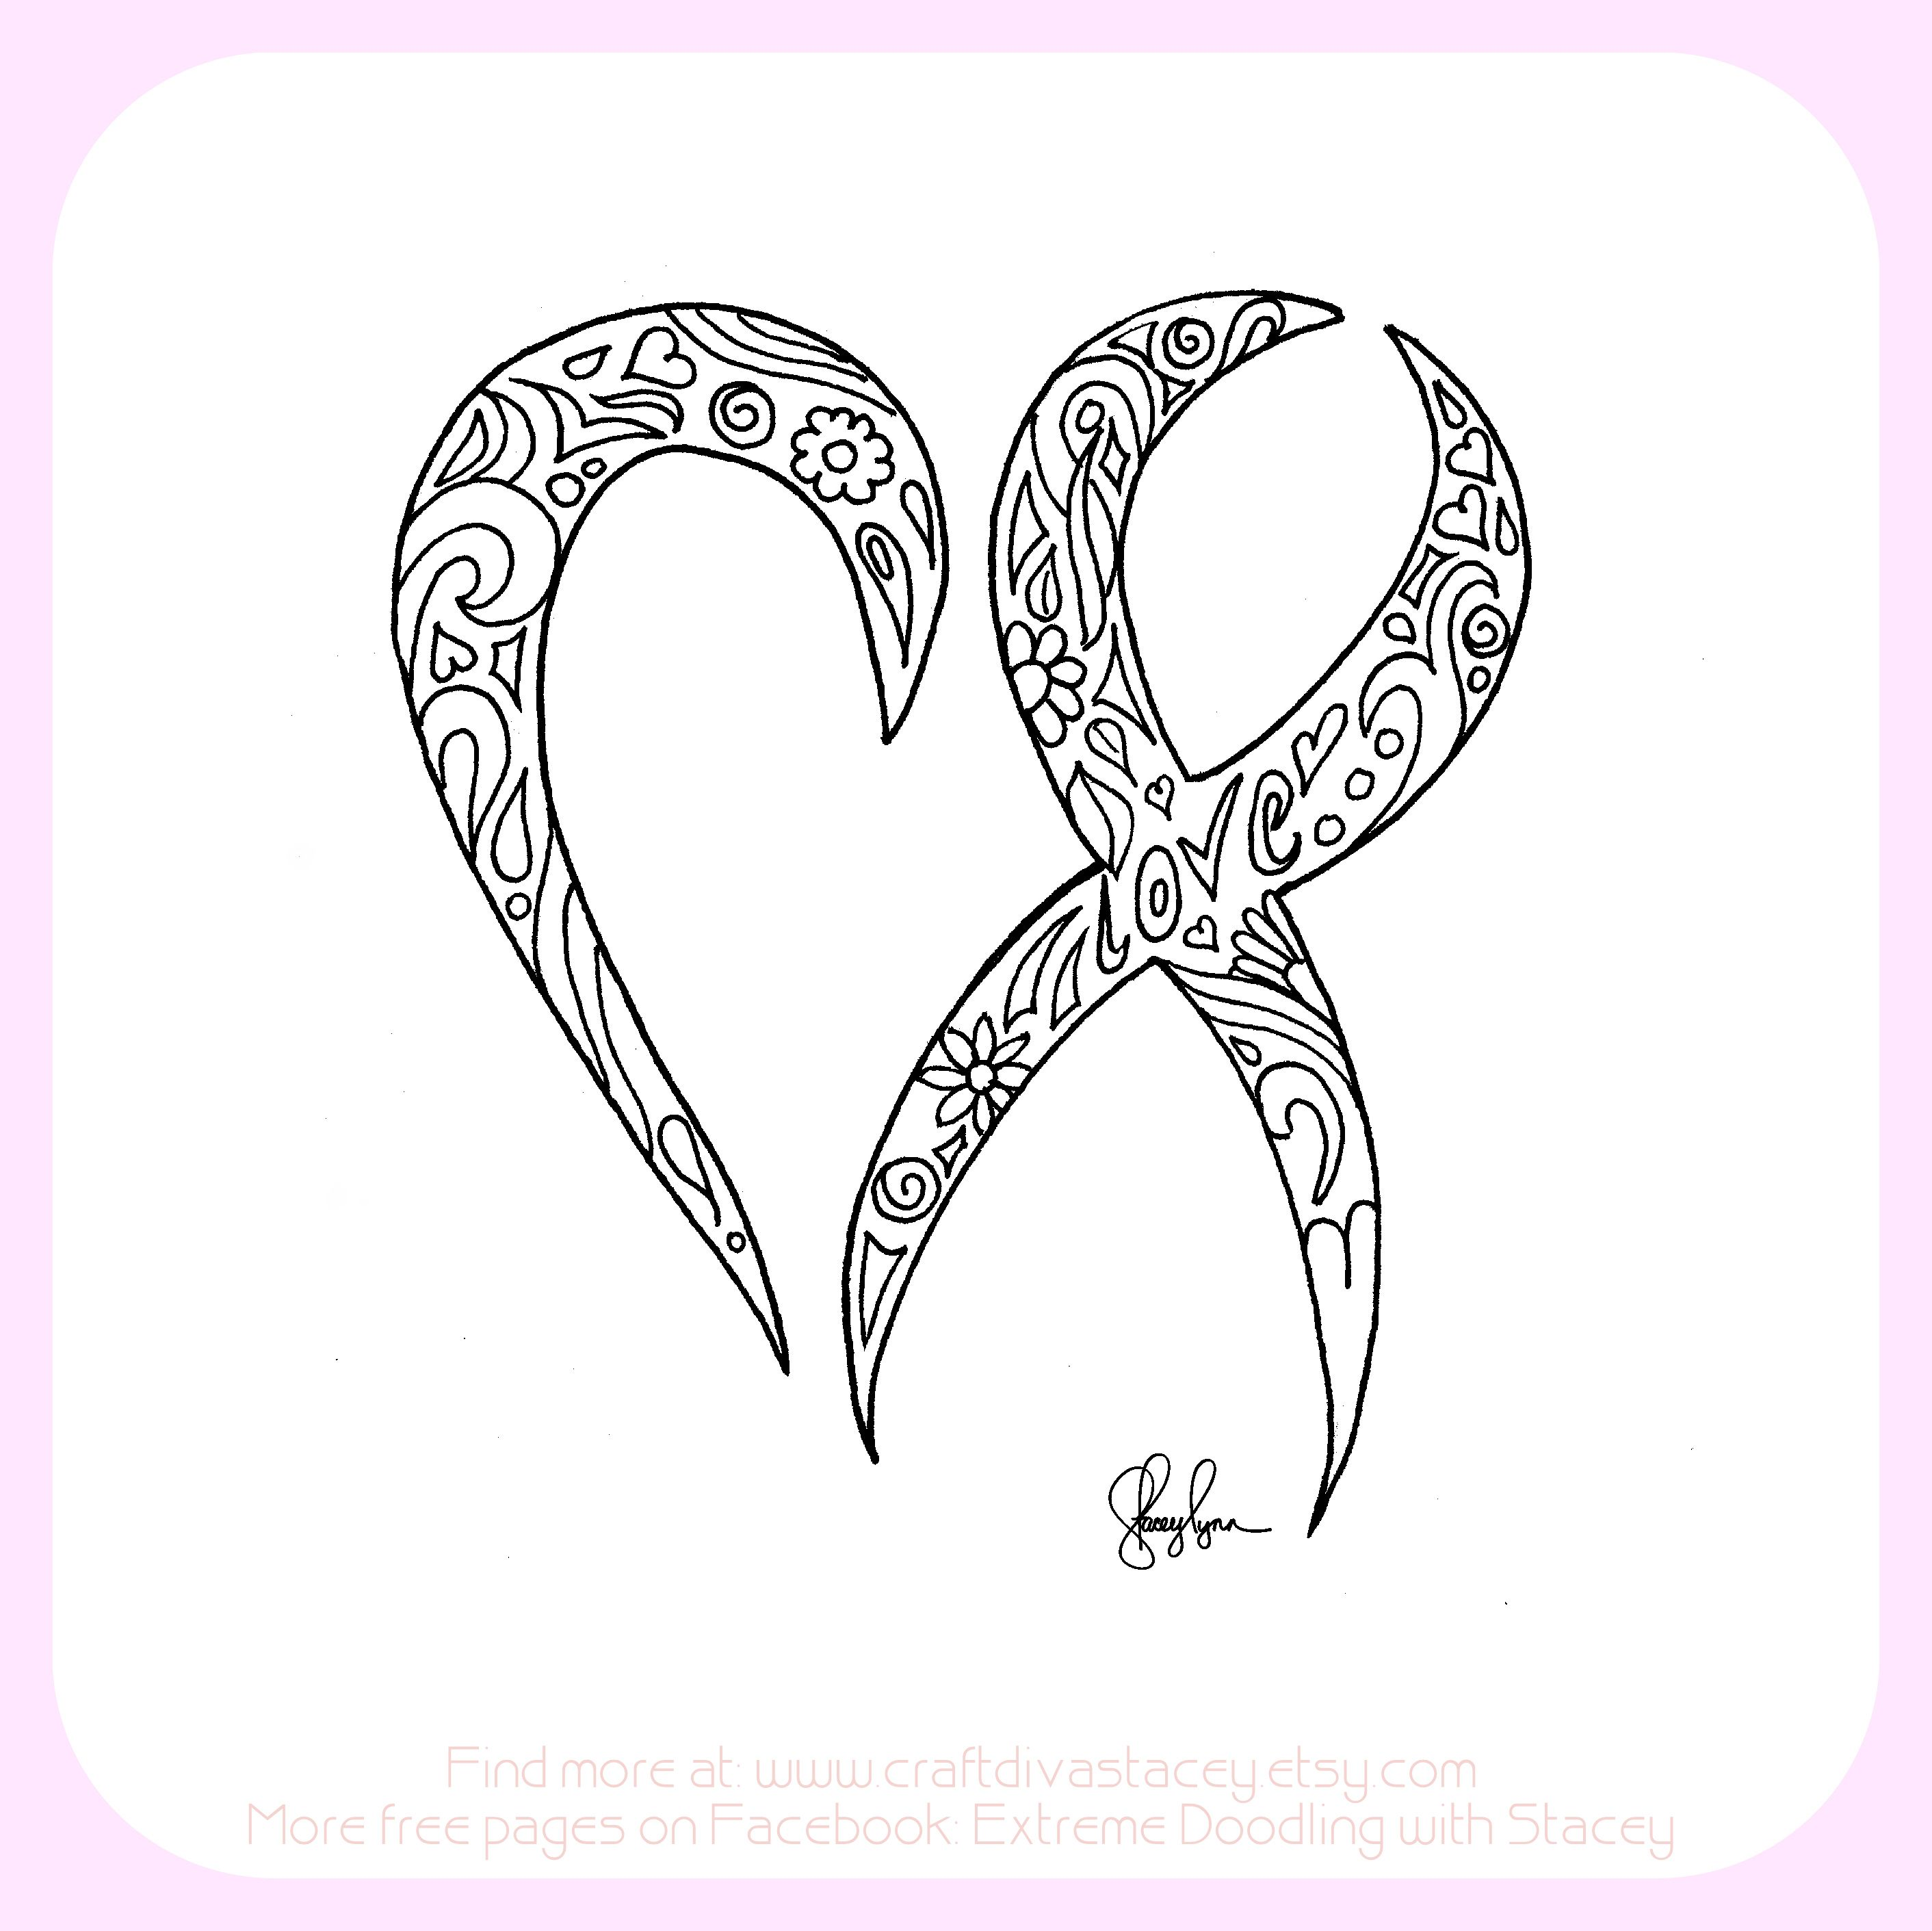 Have a heart for cancer Cancer ribbon coloring page Find more